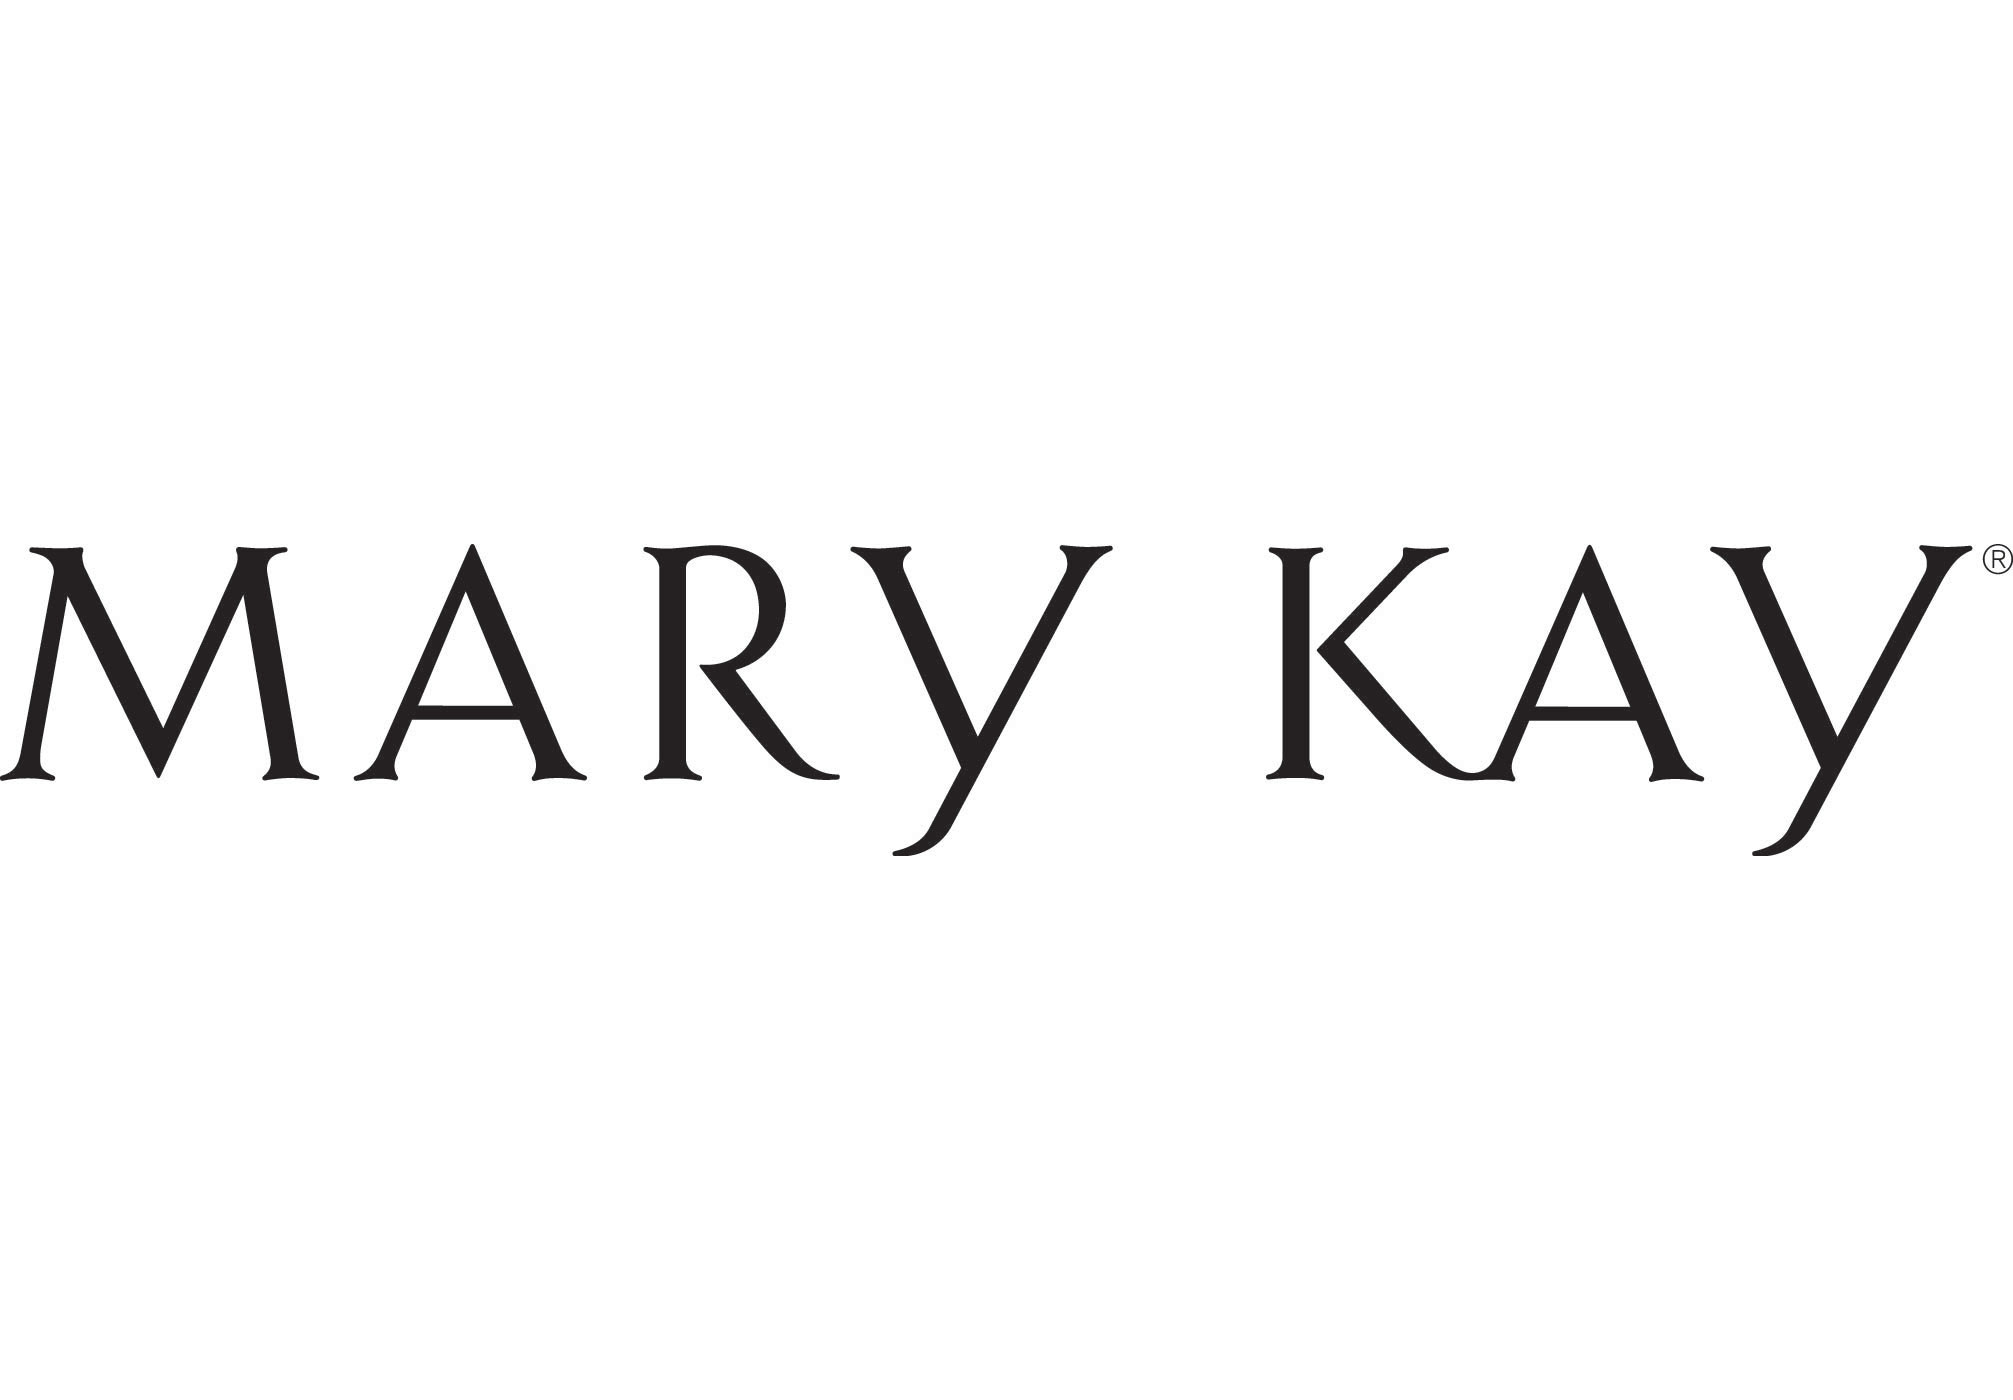 Mary kay cosmetics logo vector